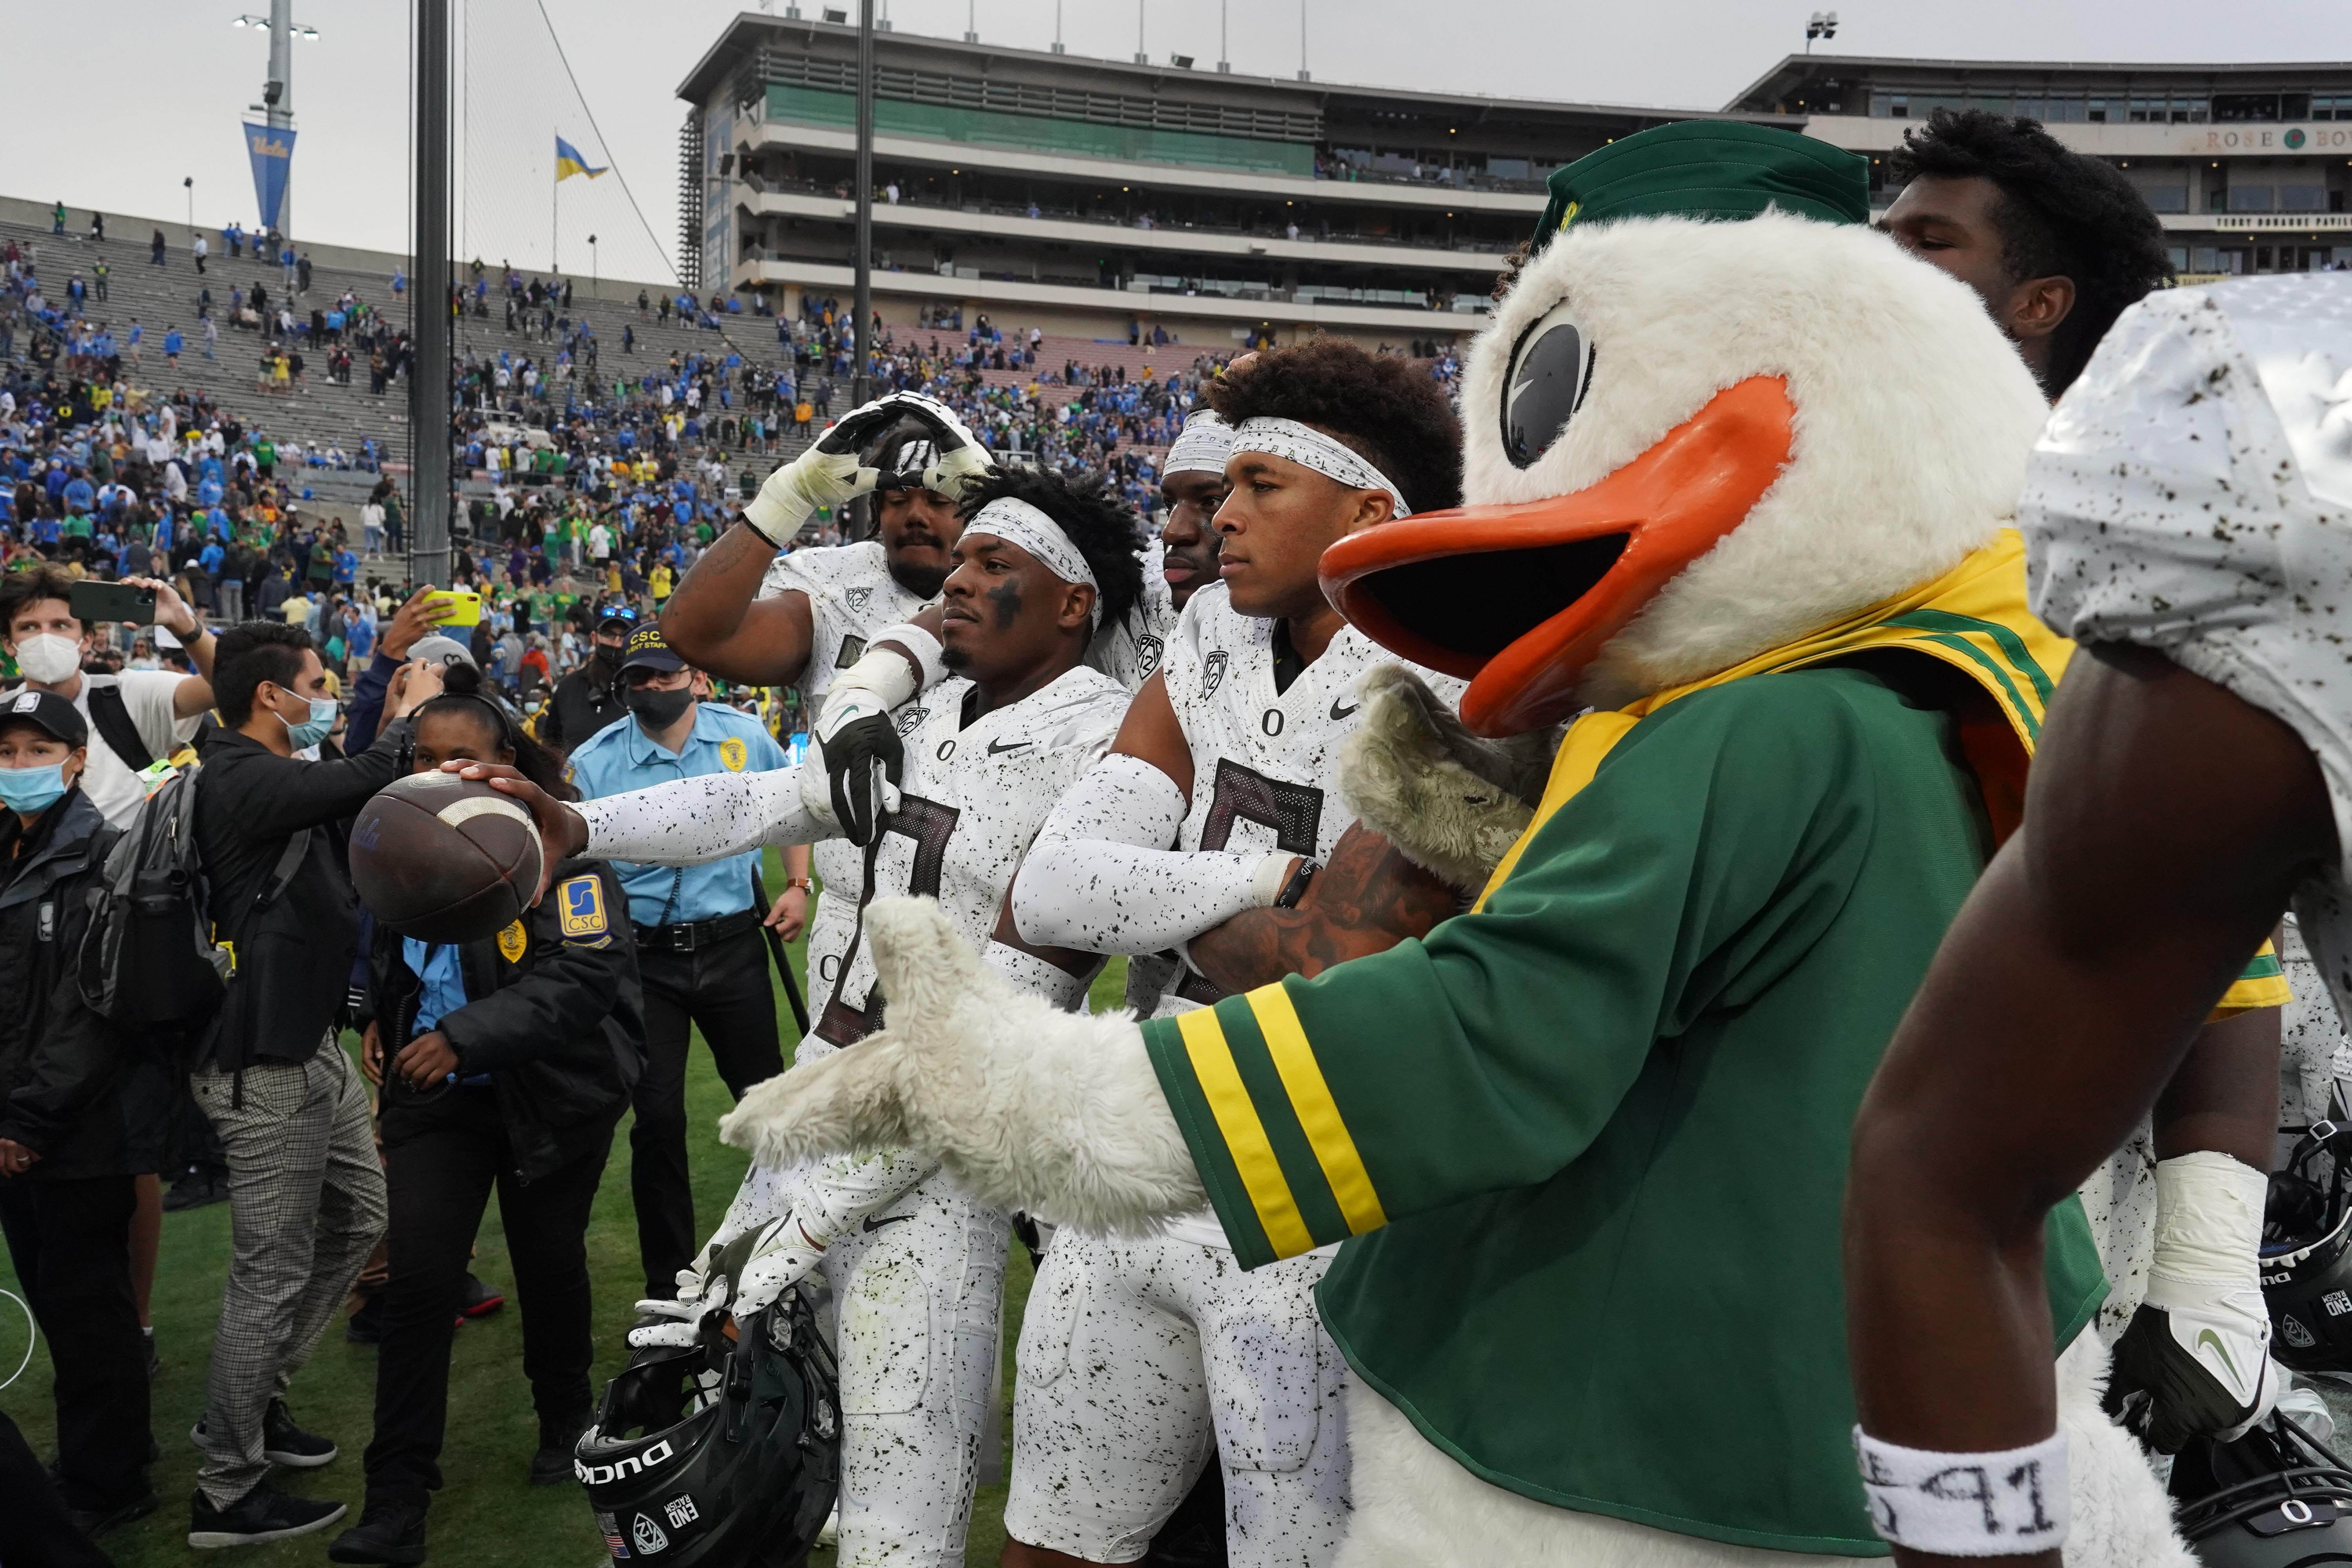 Winners and losers of college football s Week 8: Oregon escapes, Penn State falls out of playoff race